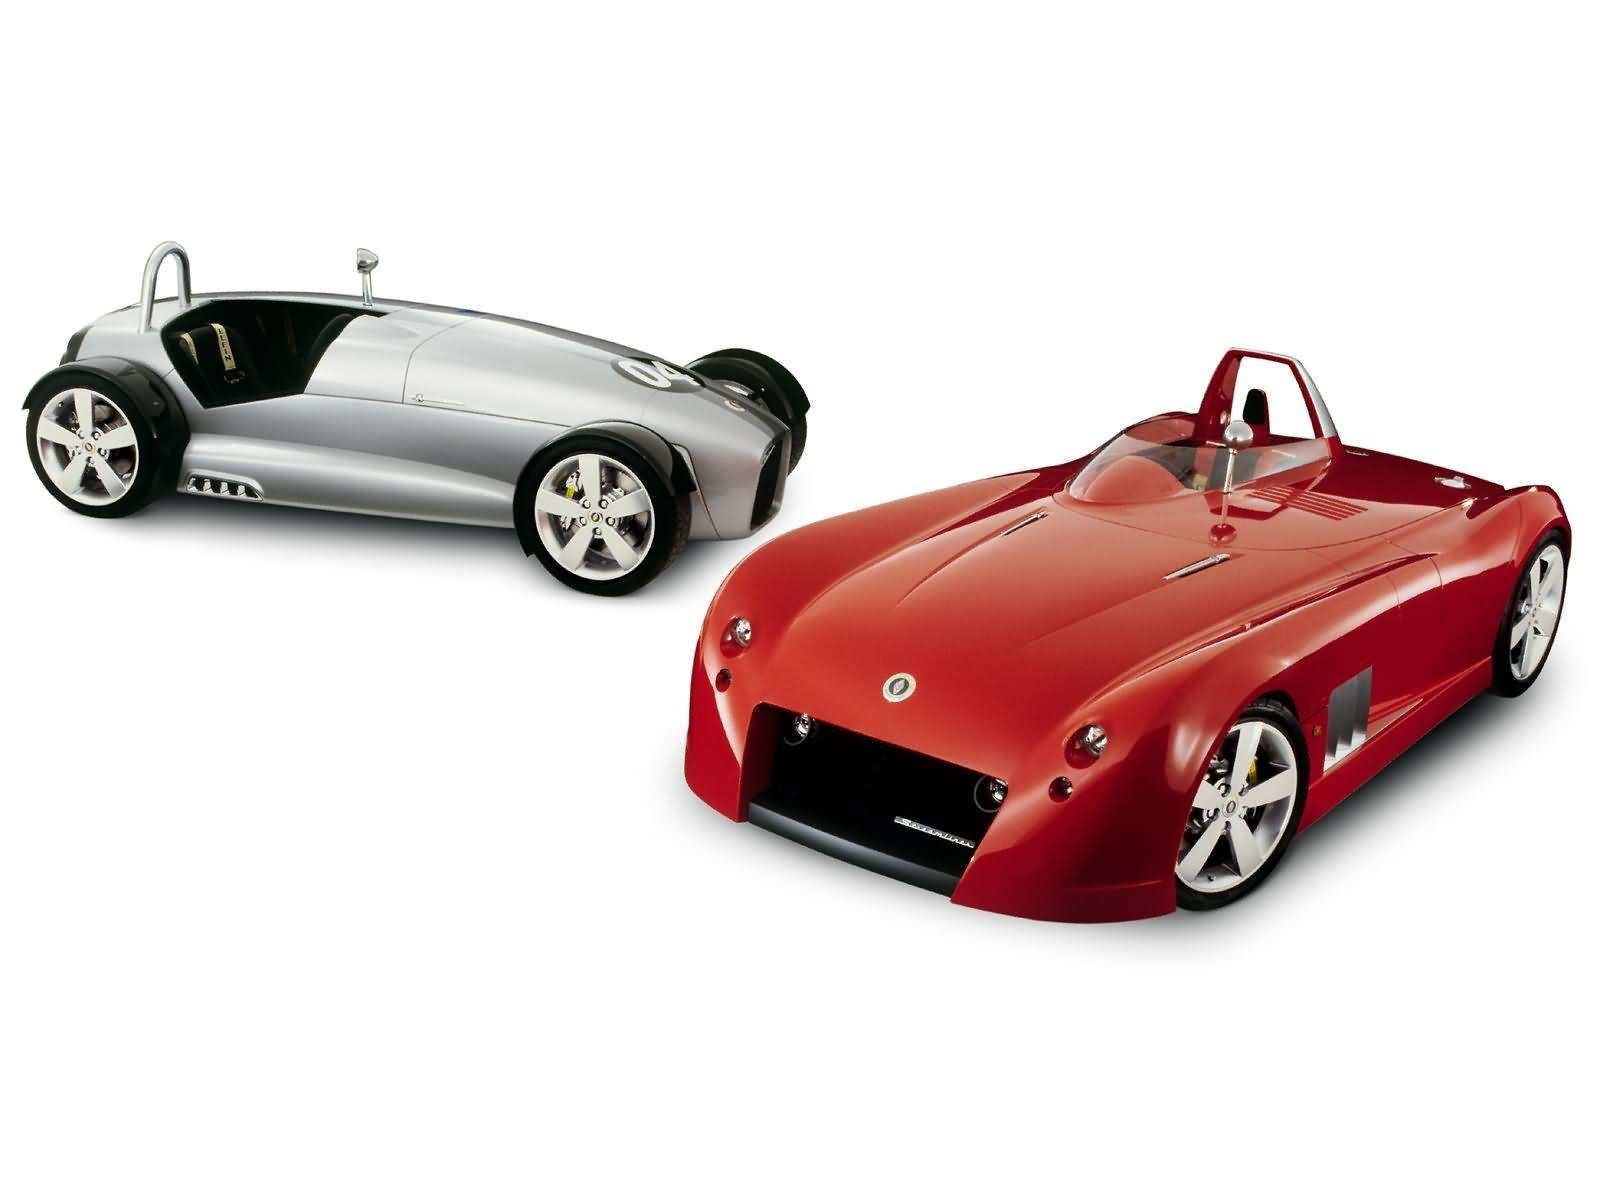 New Sport Cars Elfin Streamliner Ms8 Hd Wallpapers 2004 On This Month